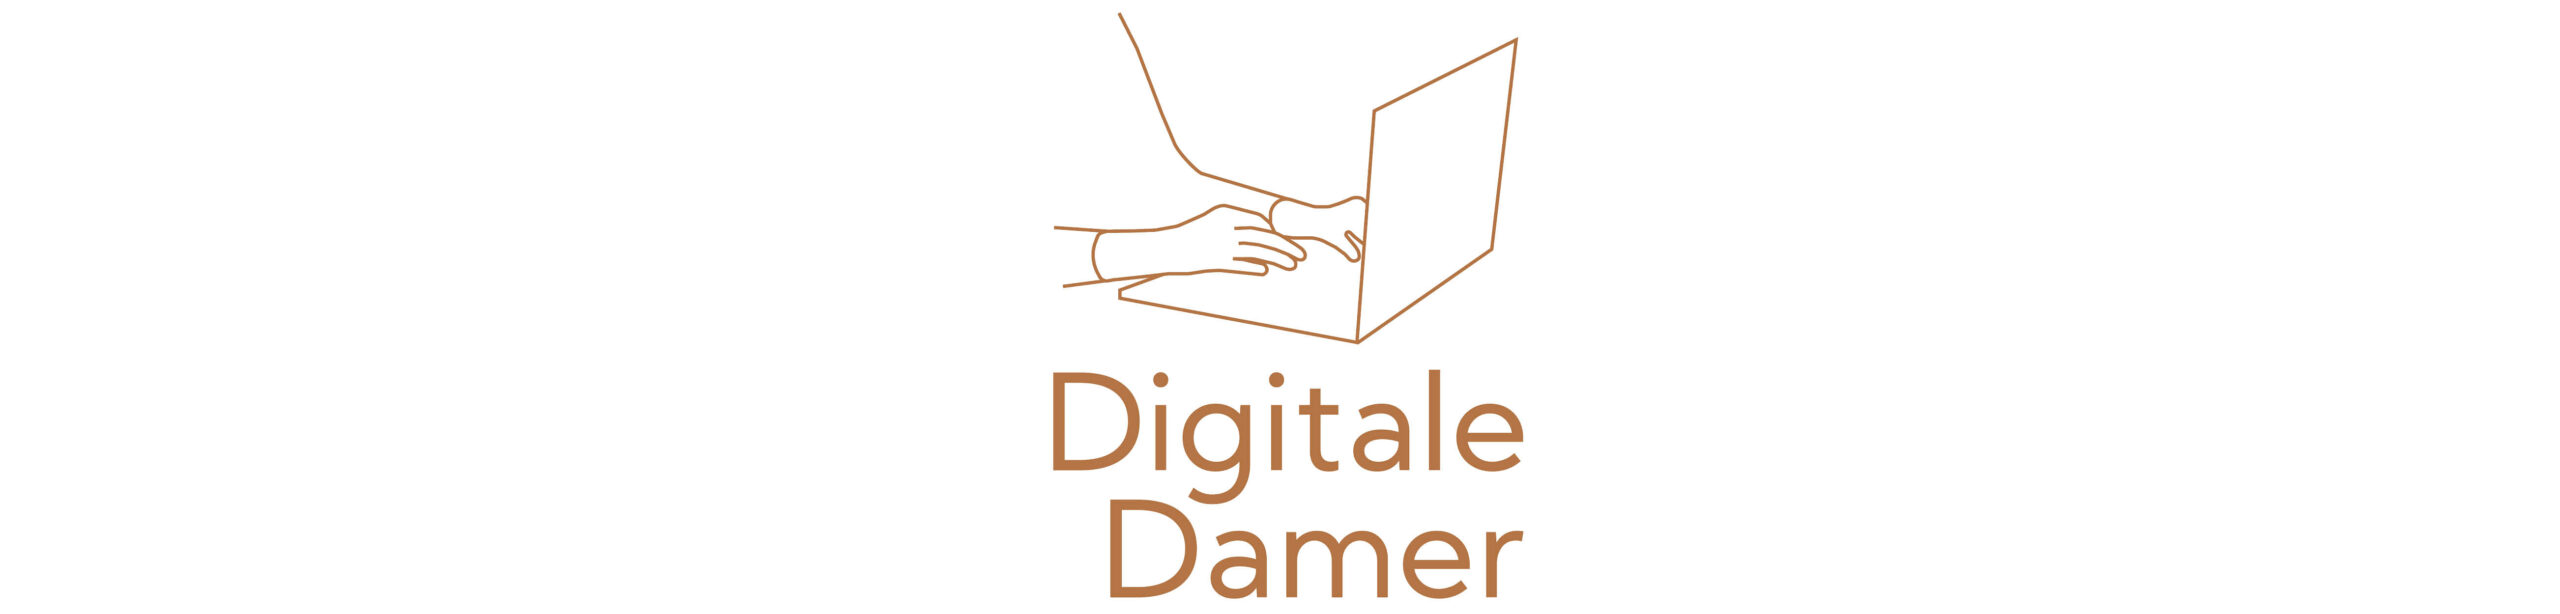 Digitale Damer cover logo